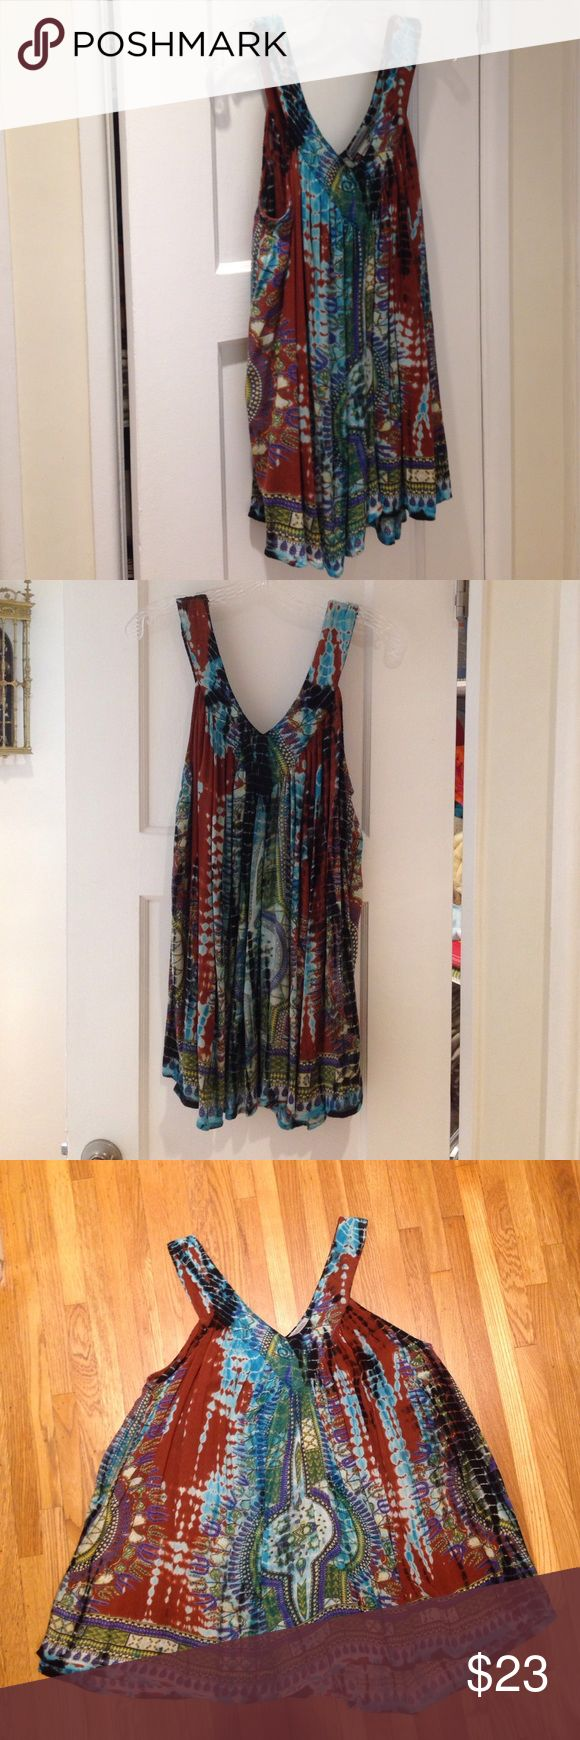 Bohemian Flow Tank Style Woman's Top This World Market bohemian flowy tank style blouse/top has a combined tie dye and Indian pattern that gives it an ethnic look. The flowy style of this top is great for 😉 camouflaging love handles, muffin tops, and or just simply being super comfortable. It's made of 100% rayon, size L/XL. Multicolored in brown, teal, turquoise, green, blue, yellow, black and ivory. World Market Tops Tank Tops